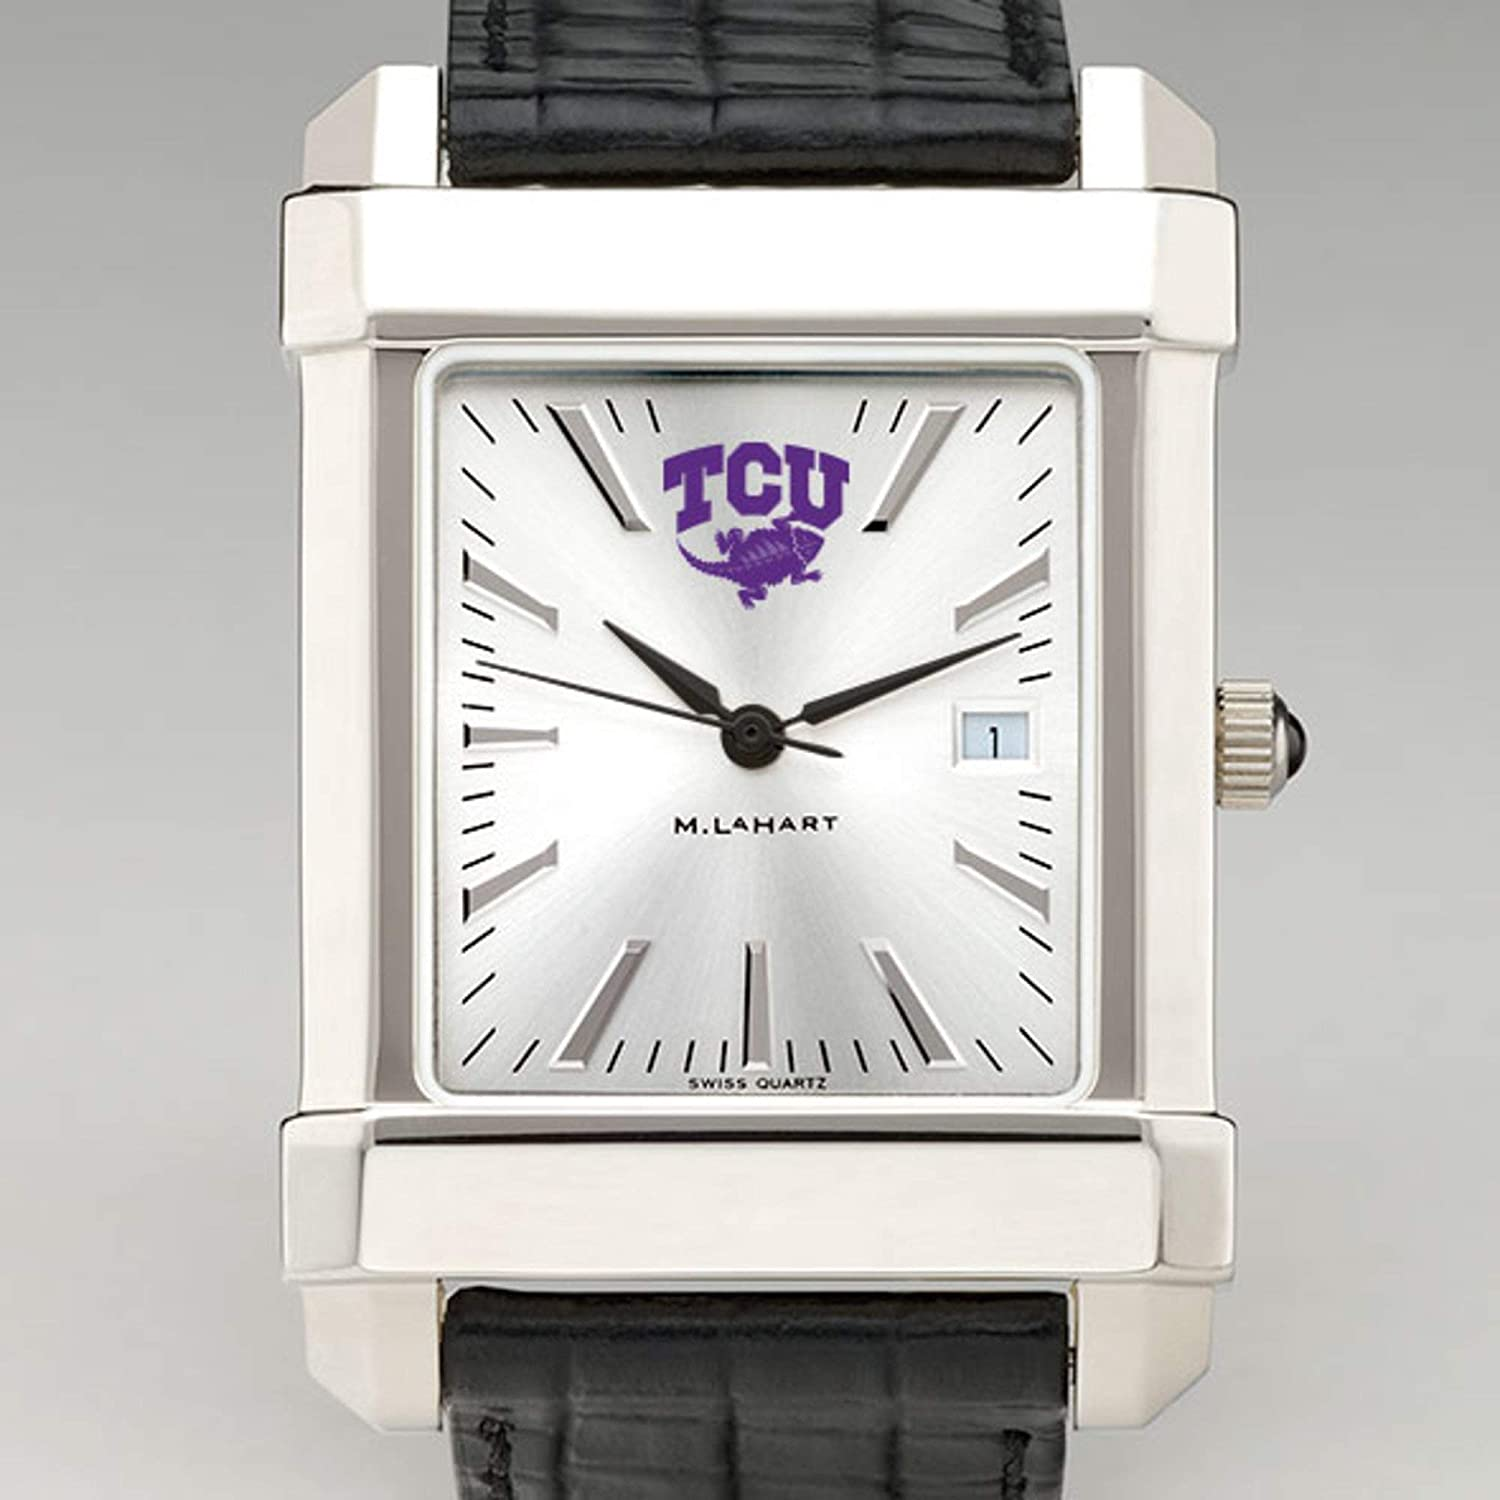 NCAA Texas Christian University Men's Collegiate Watch with Leather Strap by M.LaHart